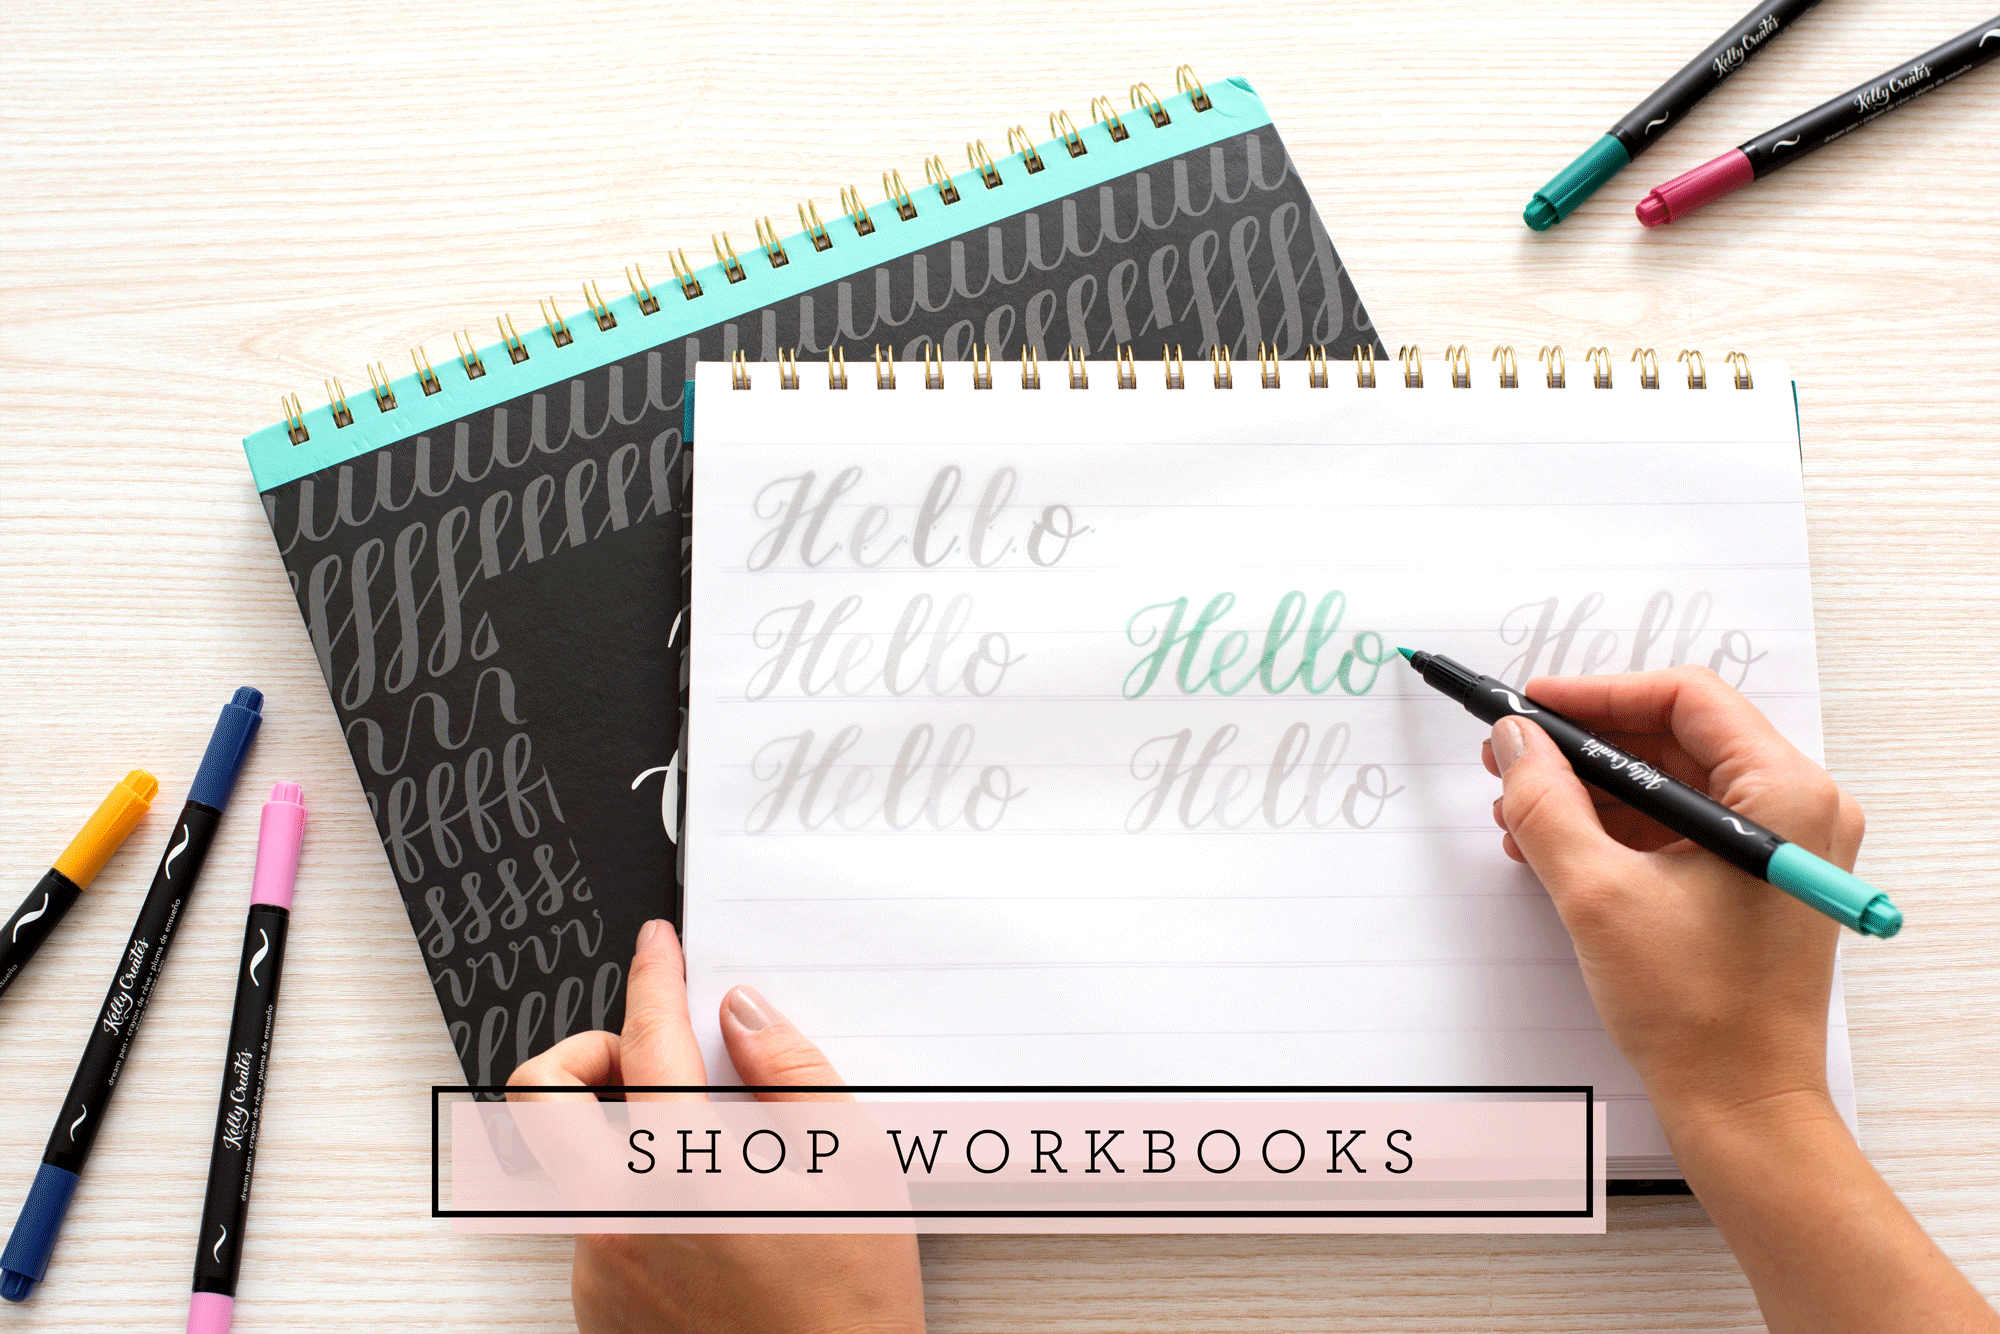 KC-SHOP-WORKBOOKS-GRAPHIC